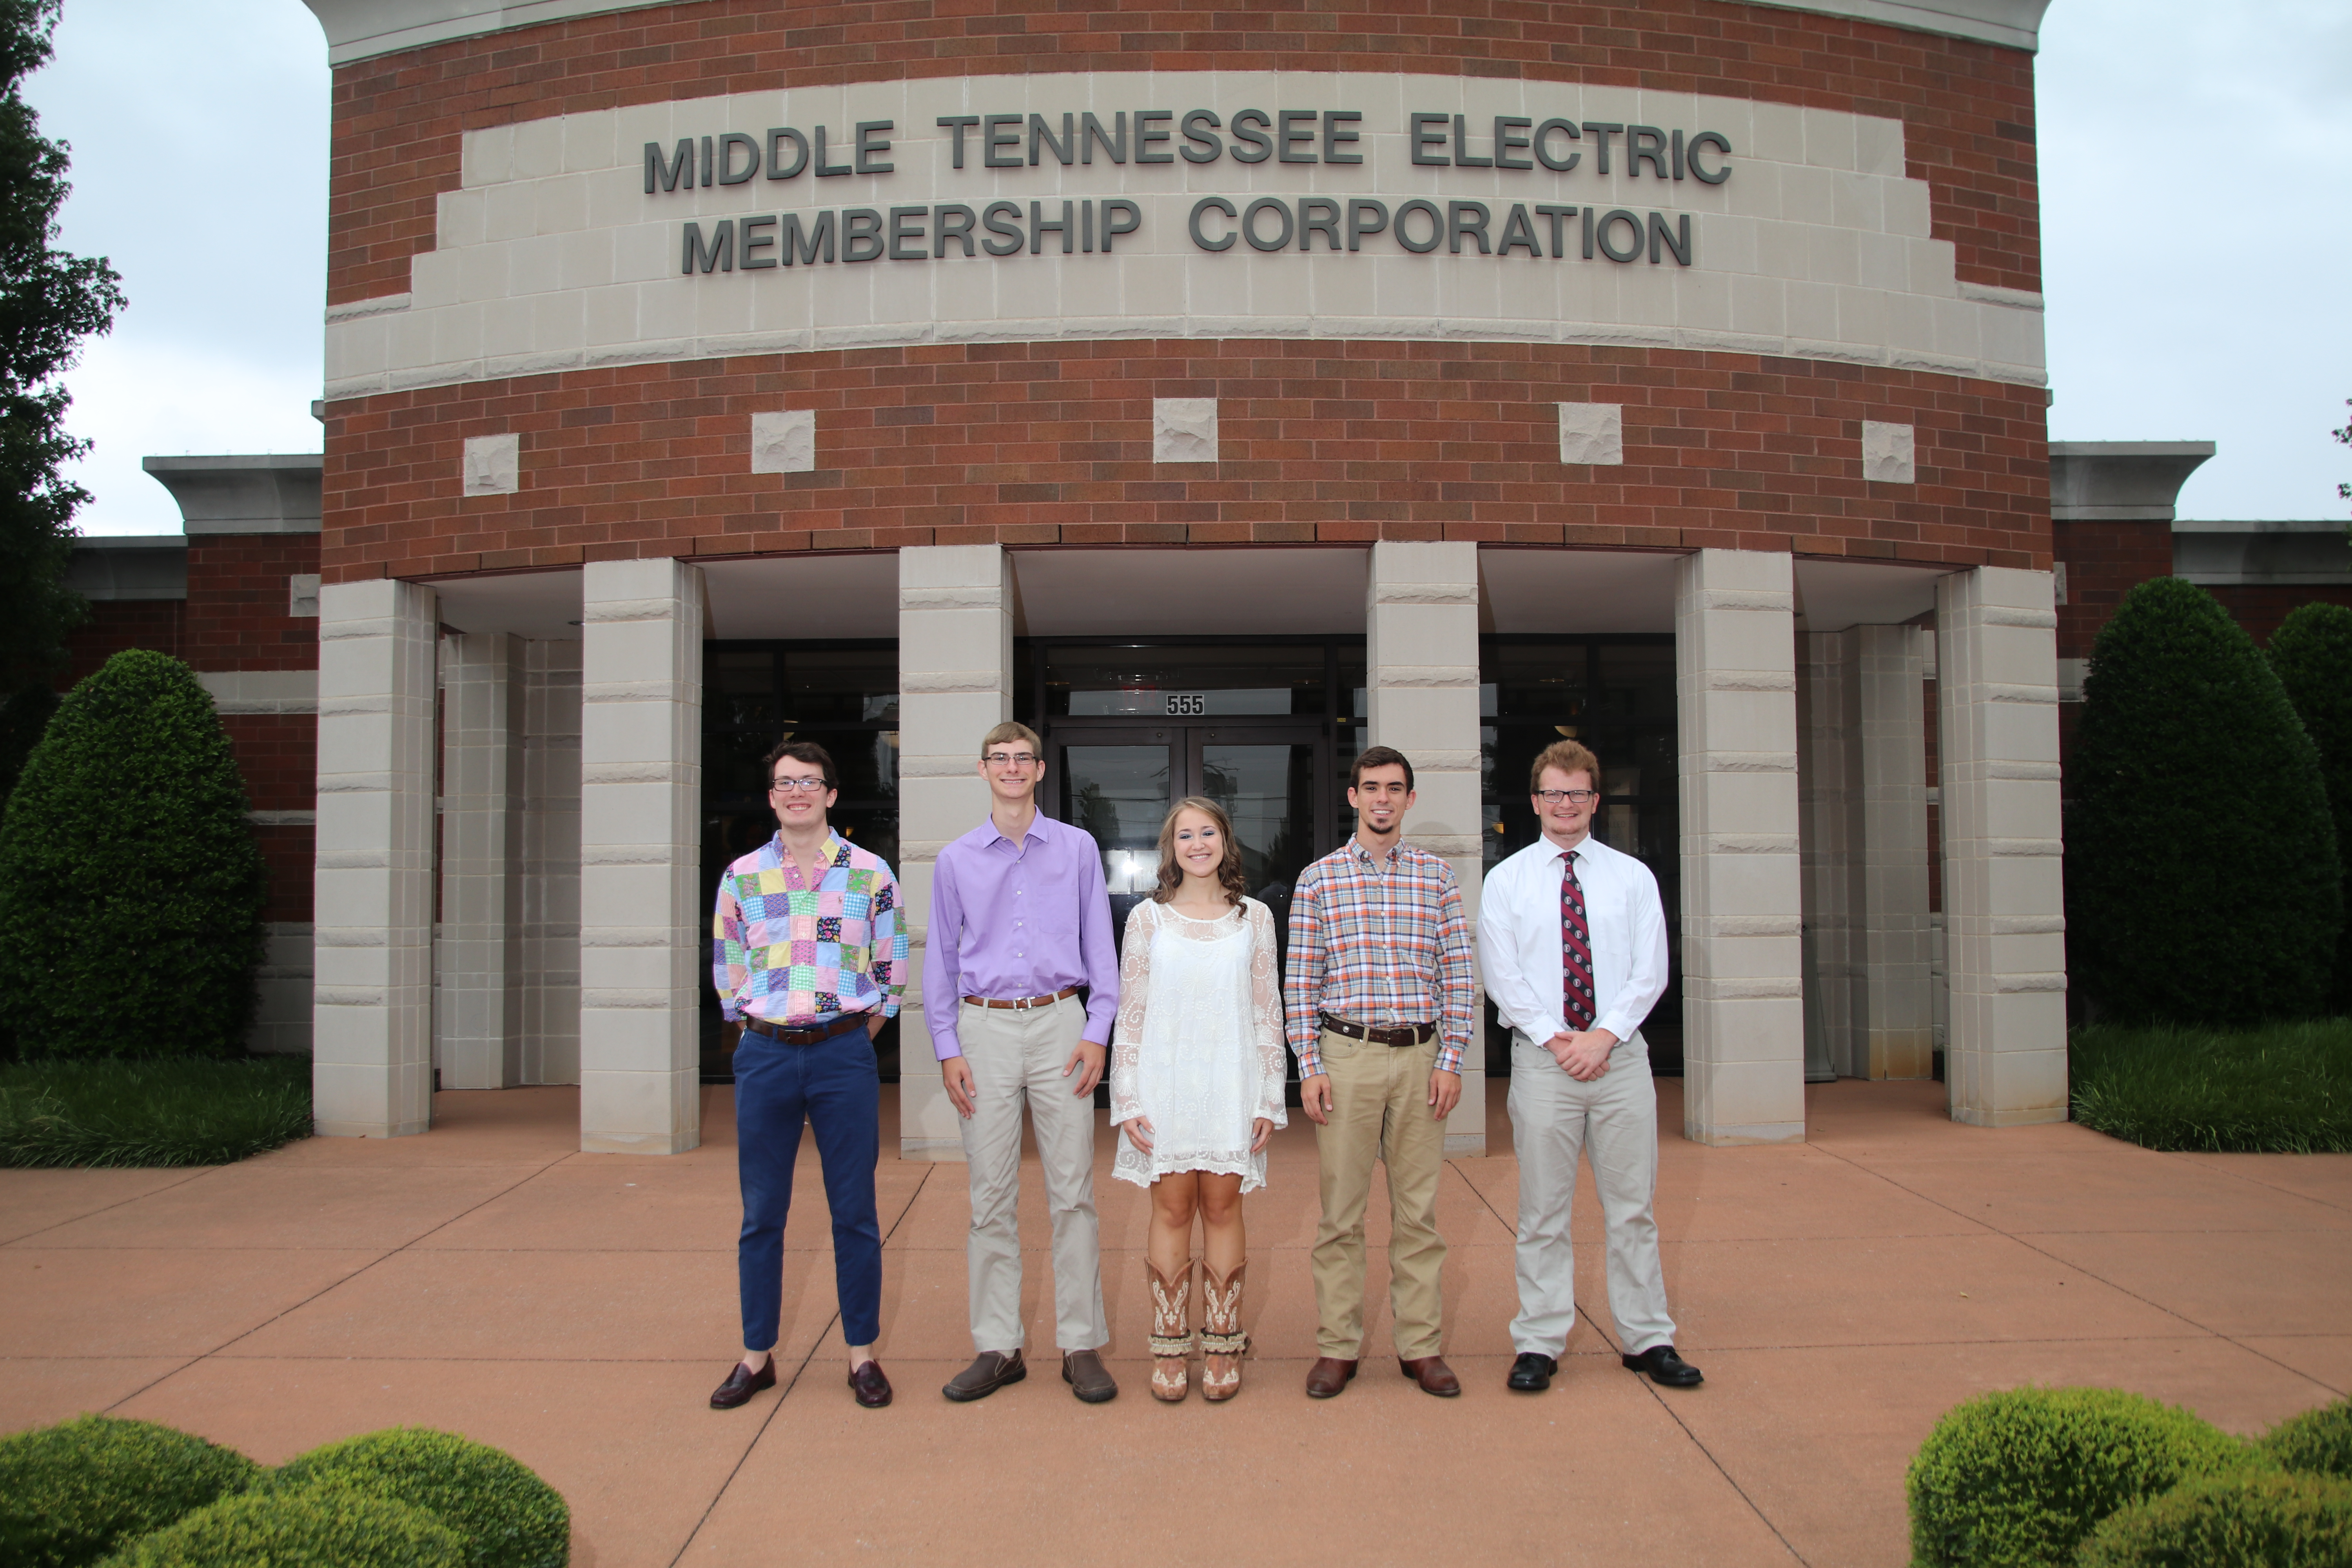 Middle TN Electric SharingChange awards $20,000 in